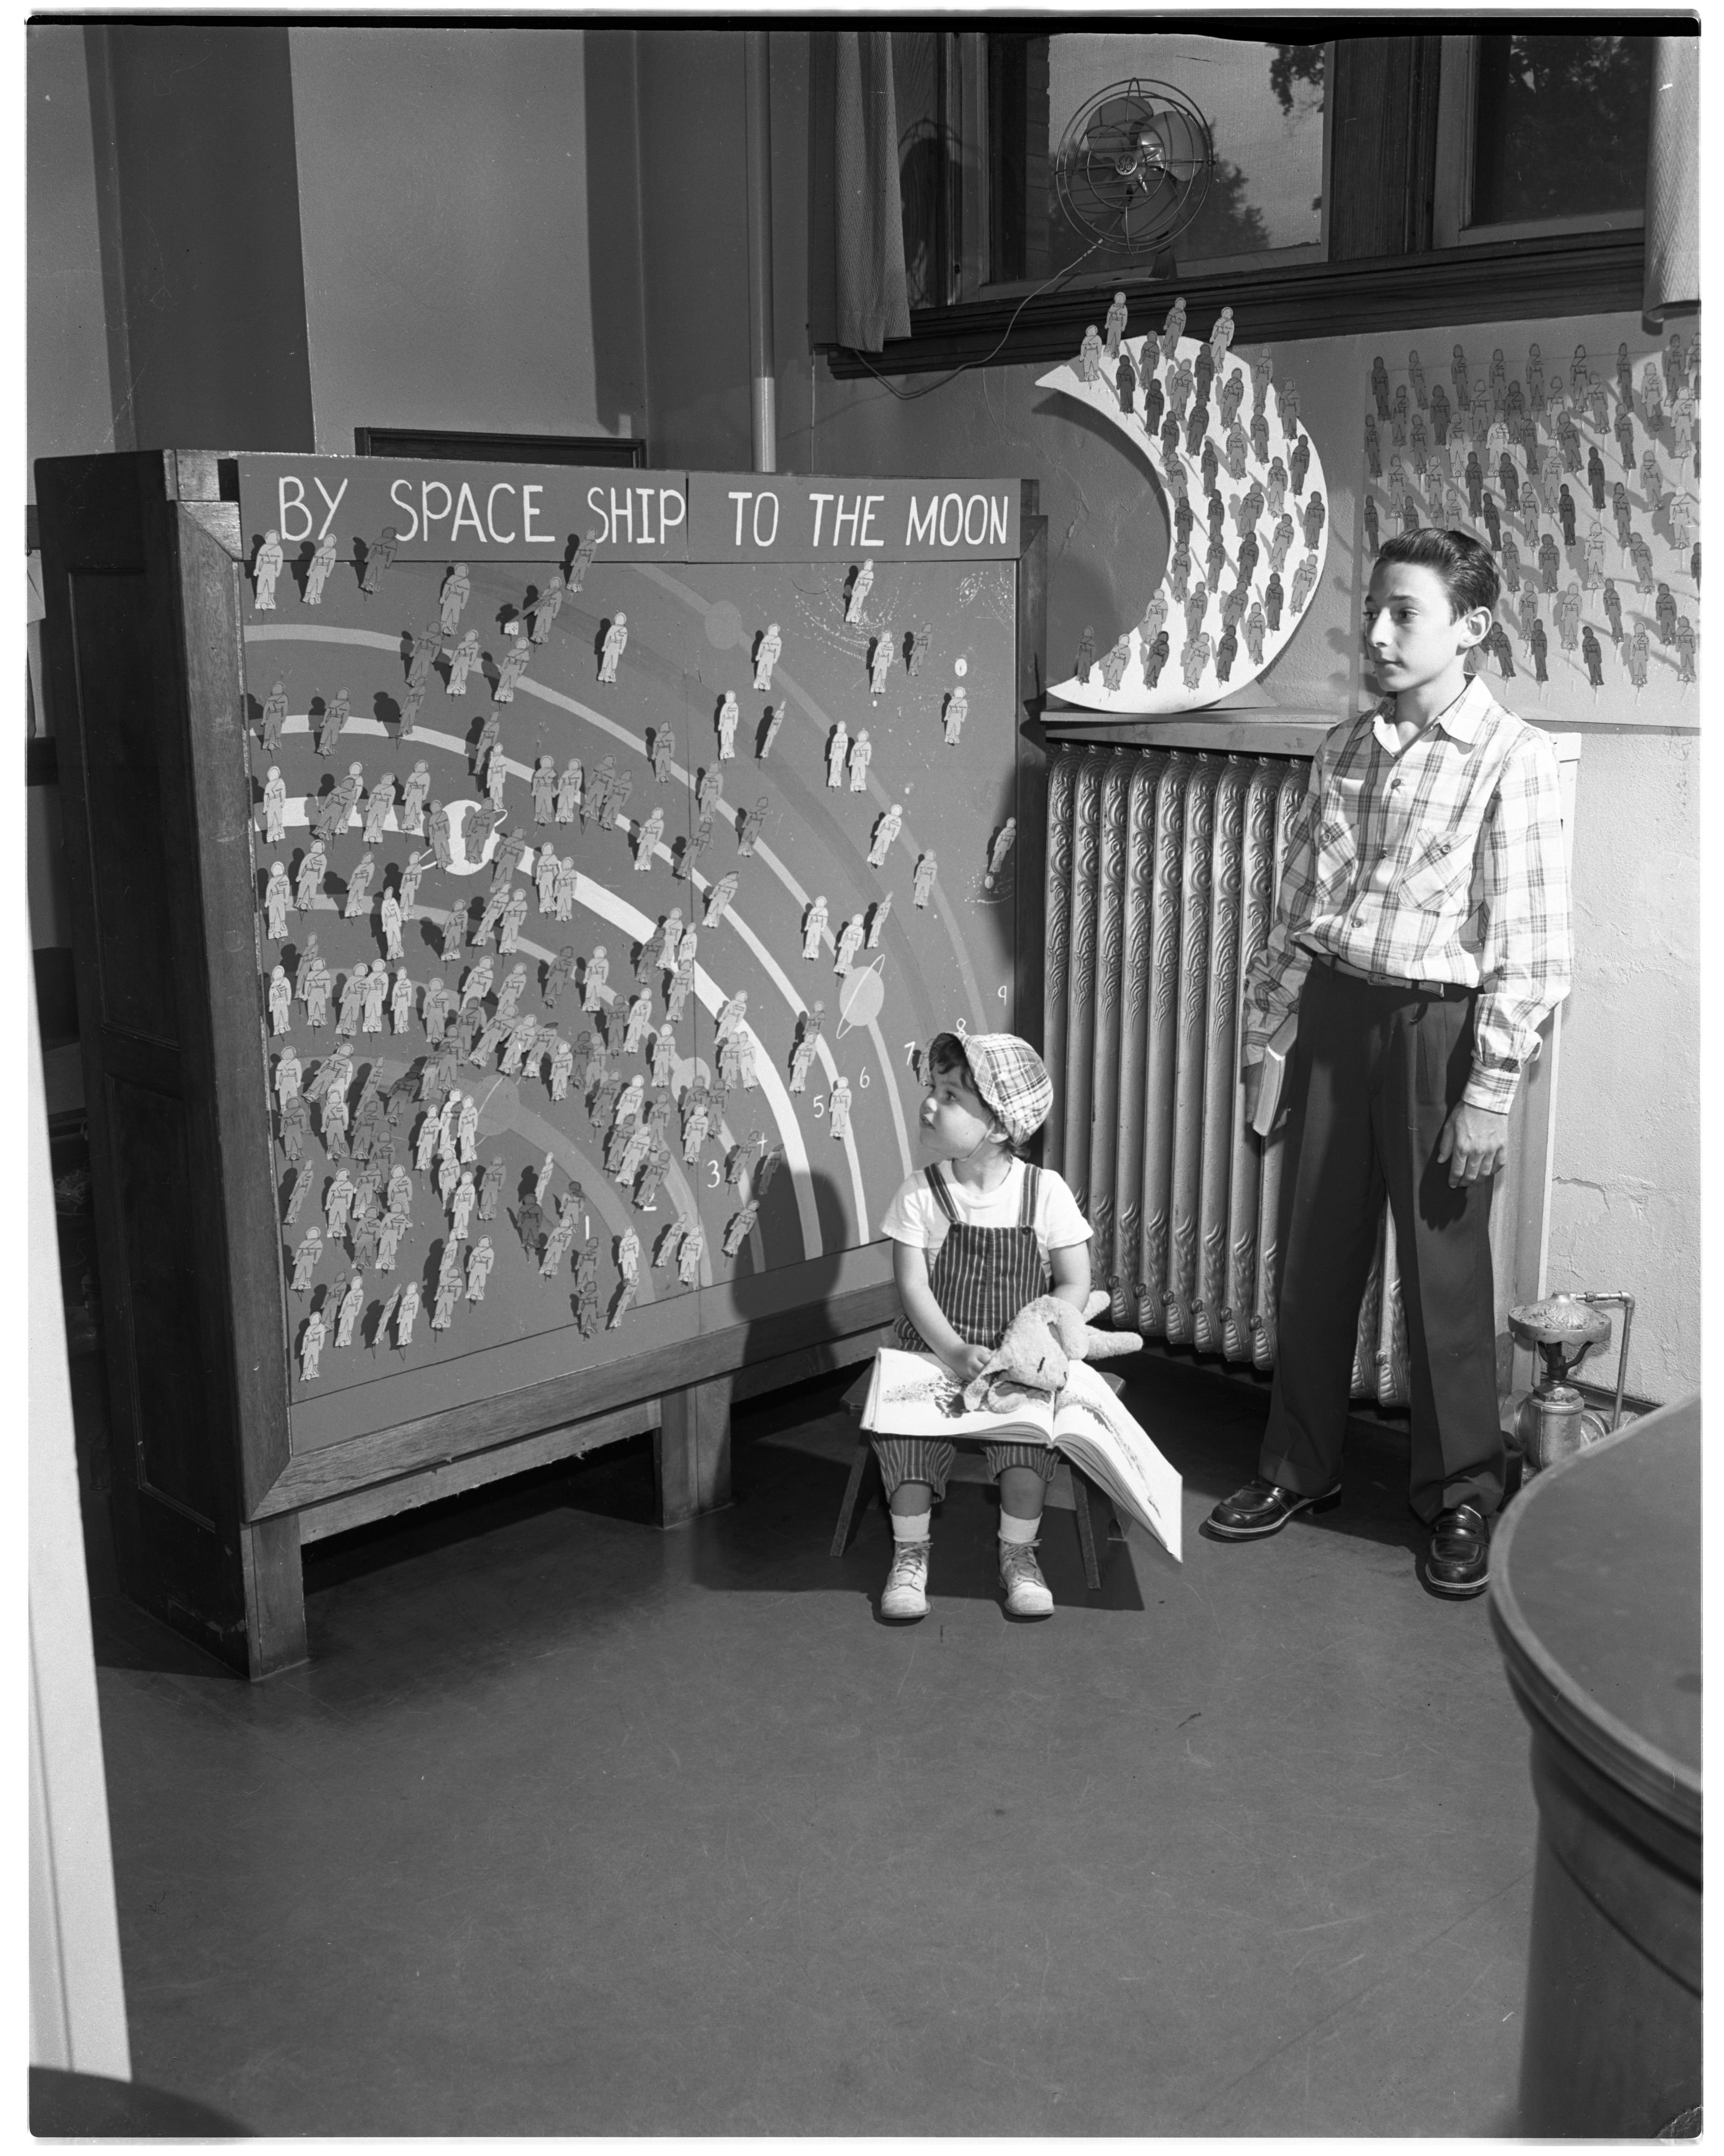 By Space Ship To The Moon - Ann Arbor Public Library Summer Reading Club, September 1954 image